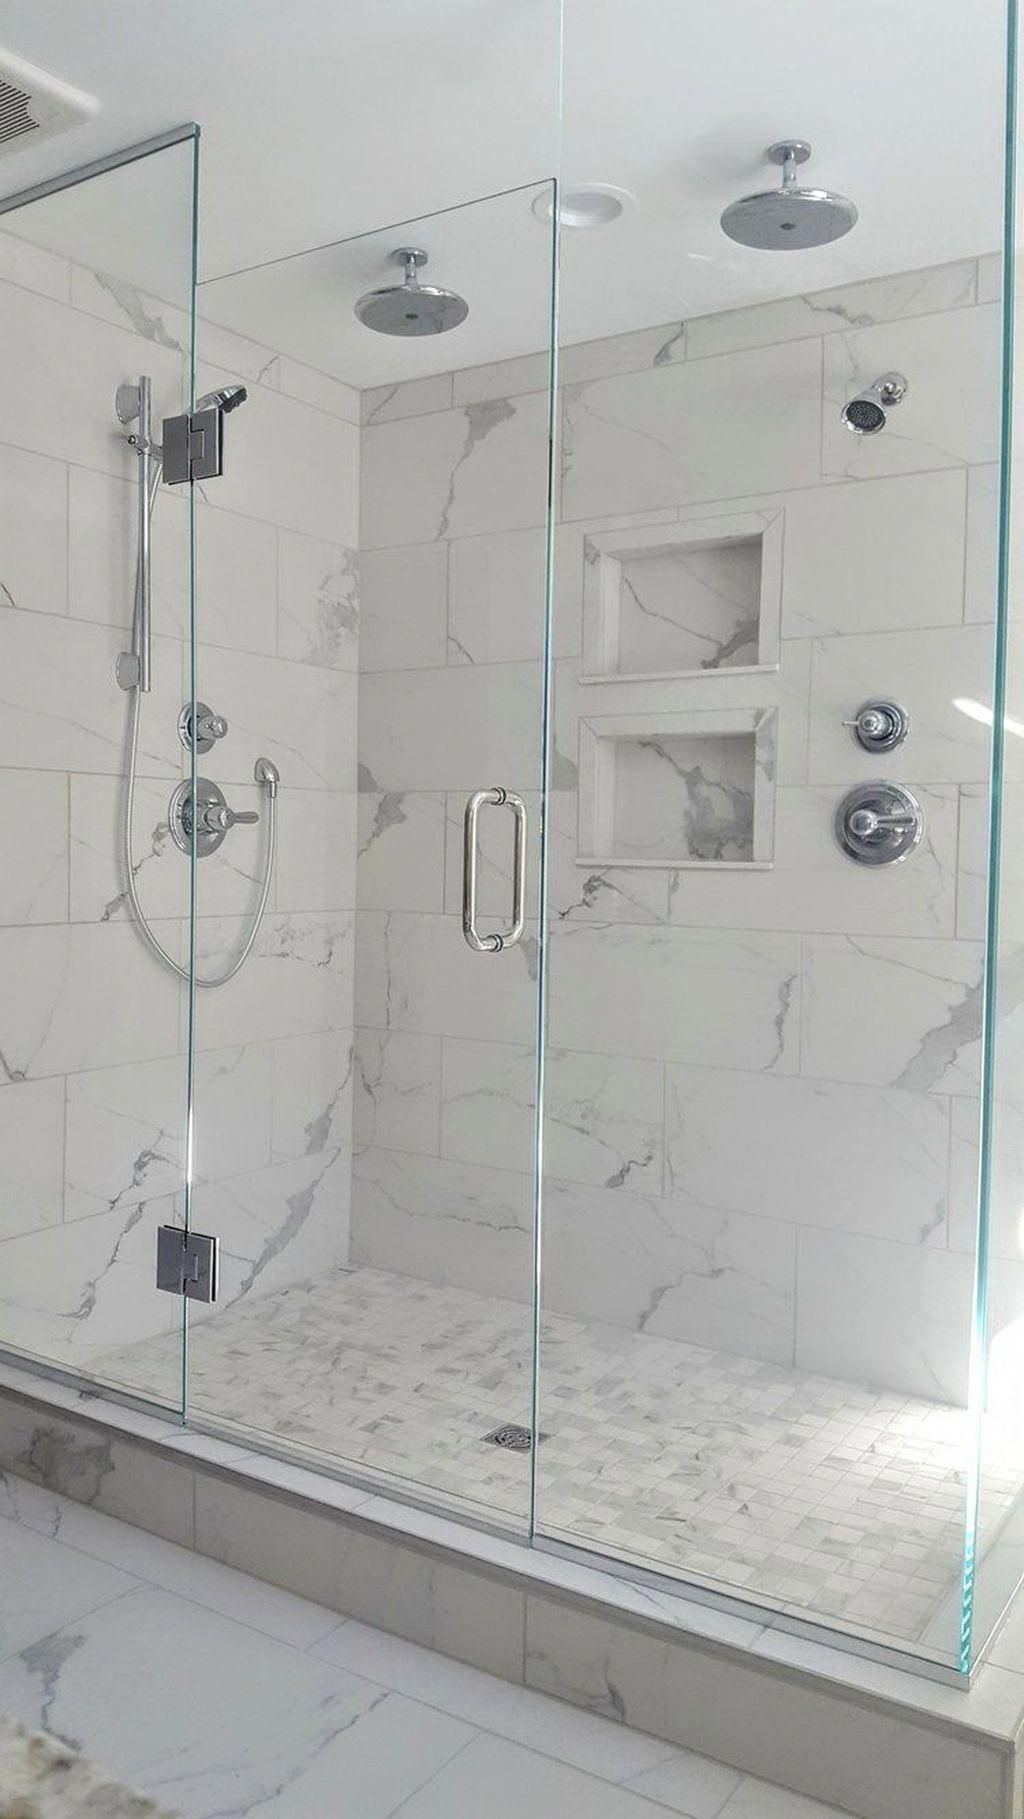 Diy Bathroom Remodel Ideasisagreed Important For Your Home Whether You Choose The Minor Bathro Master Bathroom Renovation Small Bathroom Bathroom Tile Designs